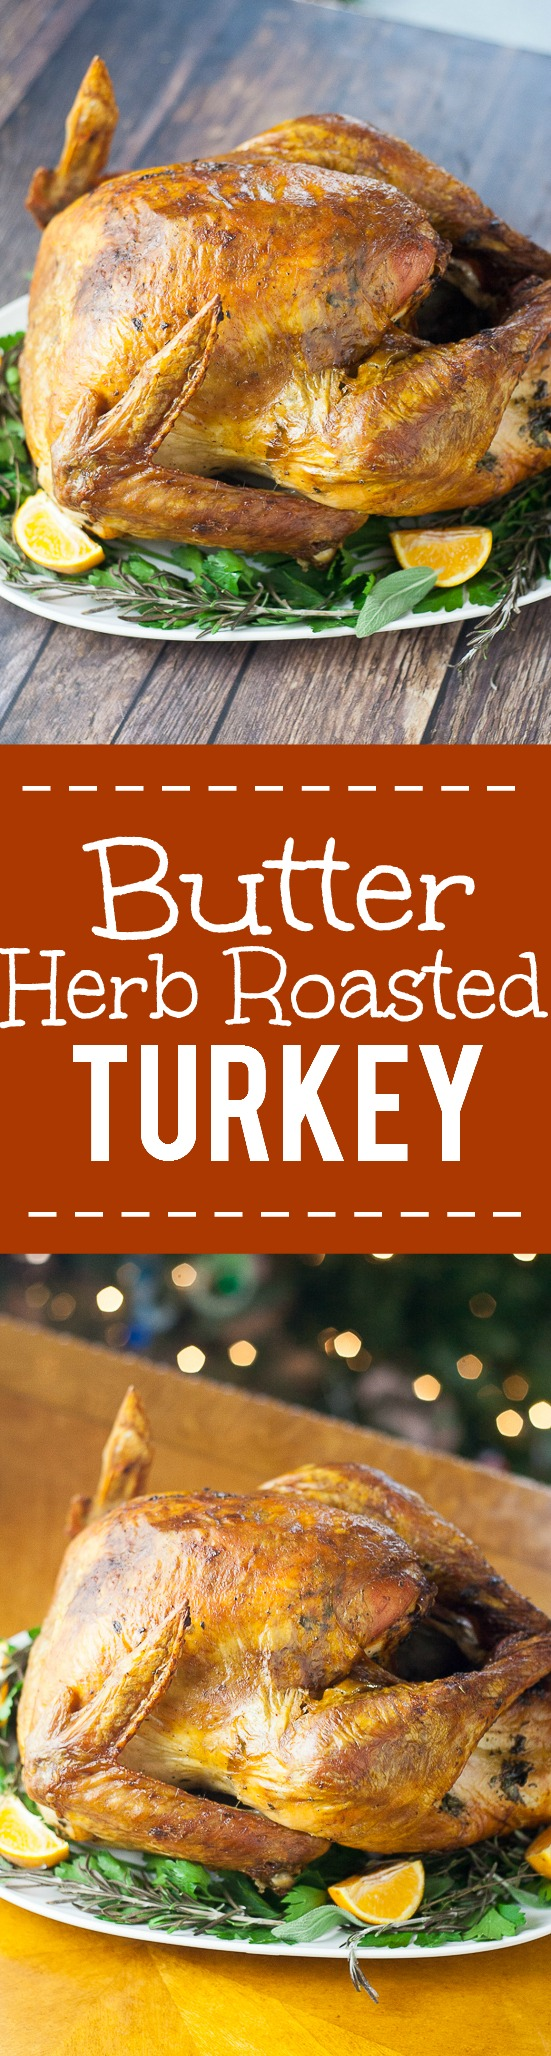 Golden, juicy, and delicious, this Butter Herb Roasted Turkey recipe ...